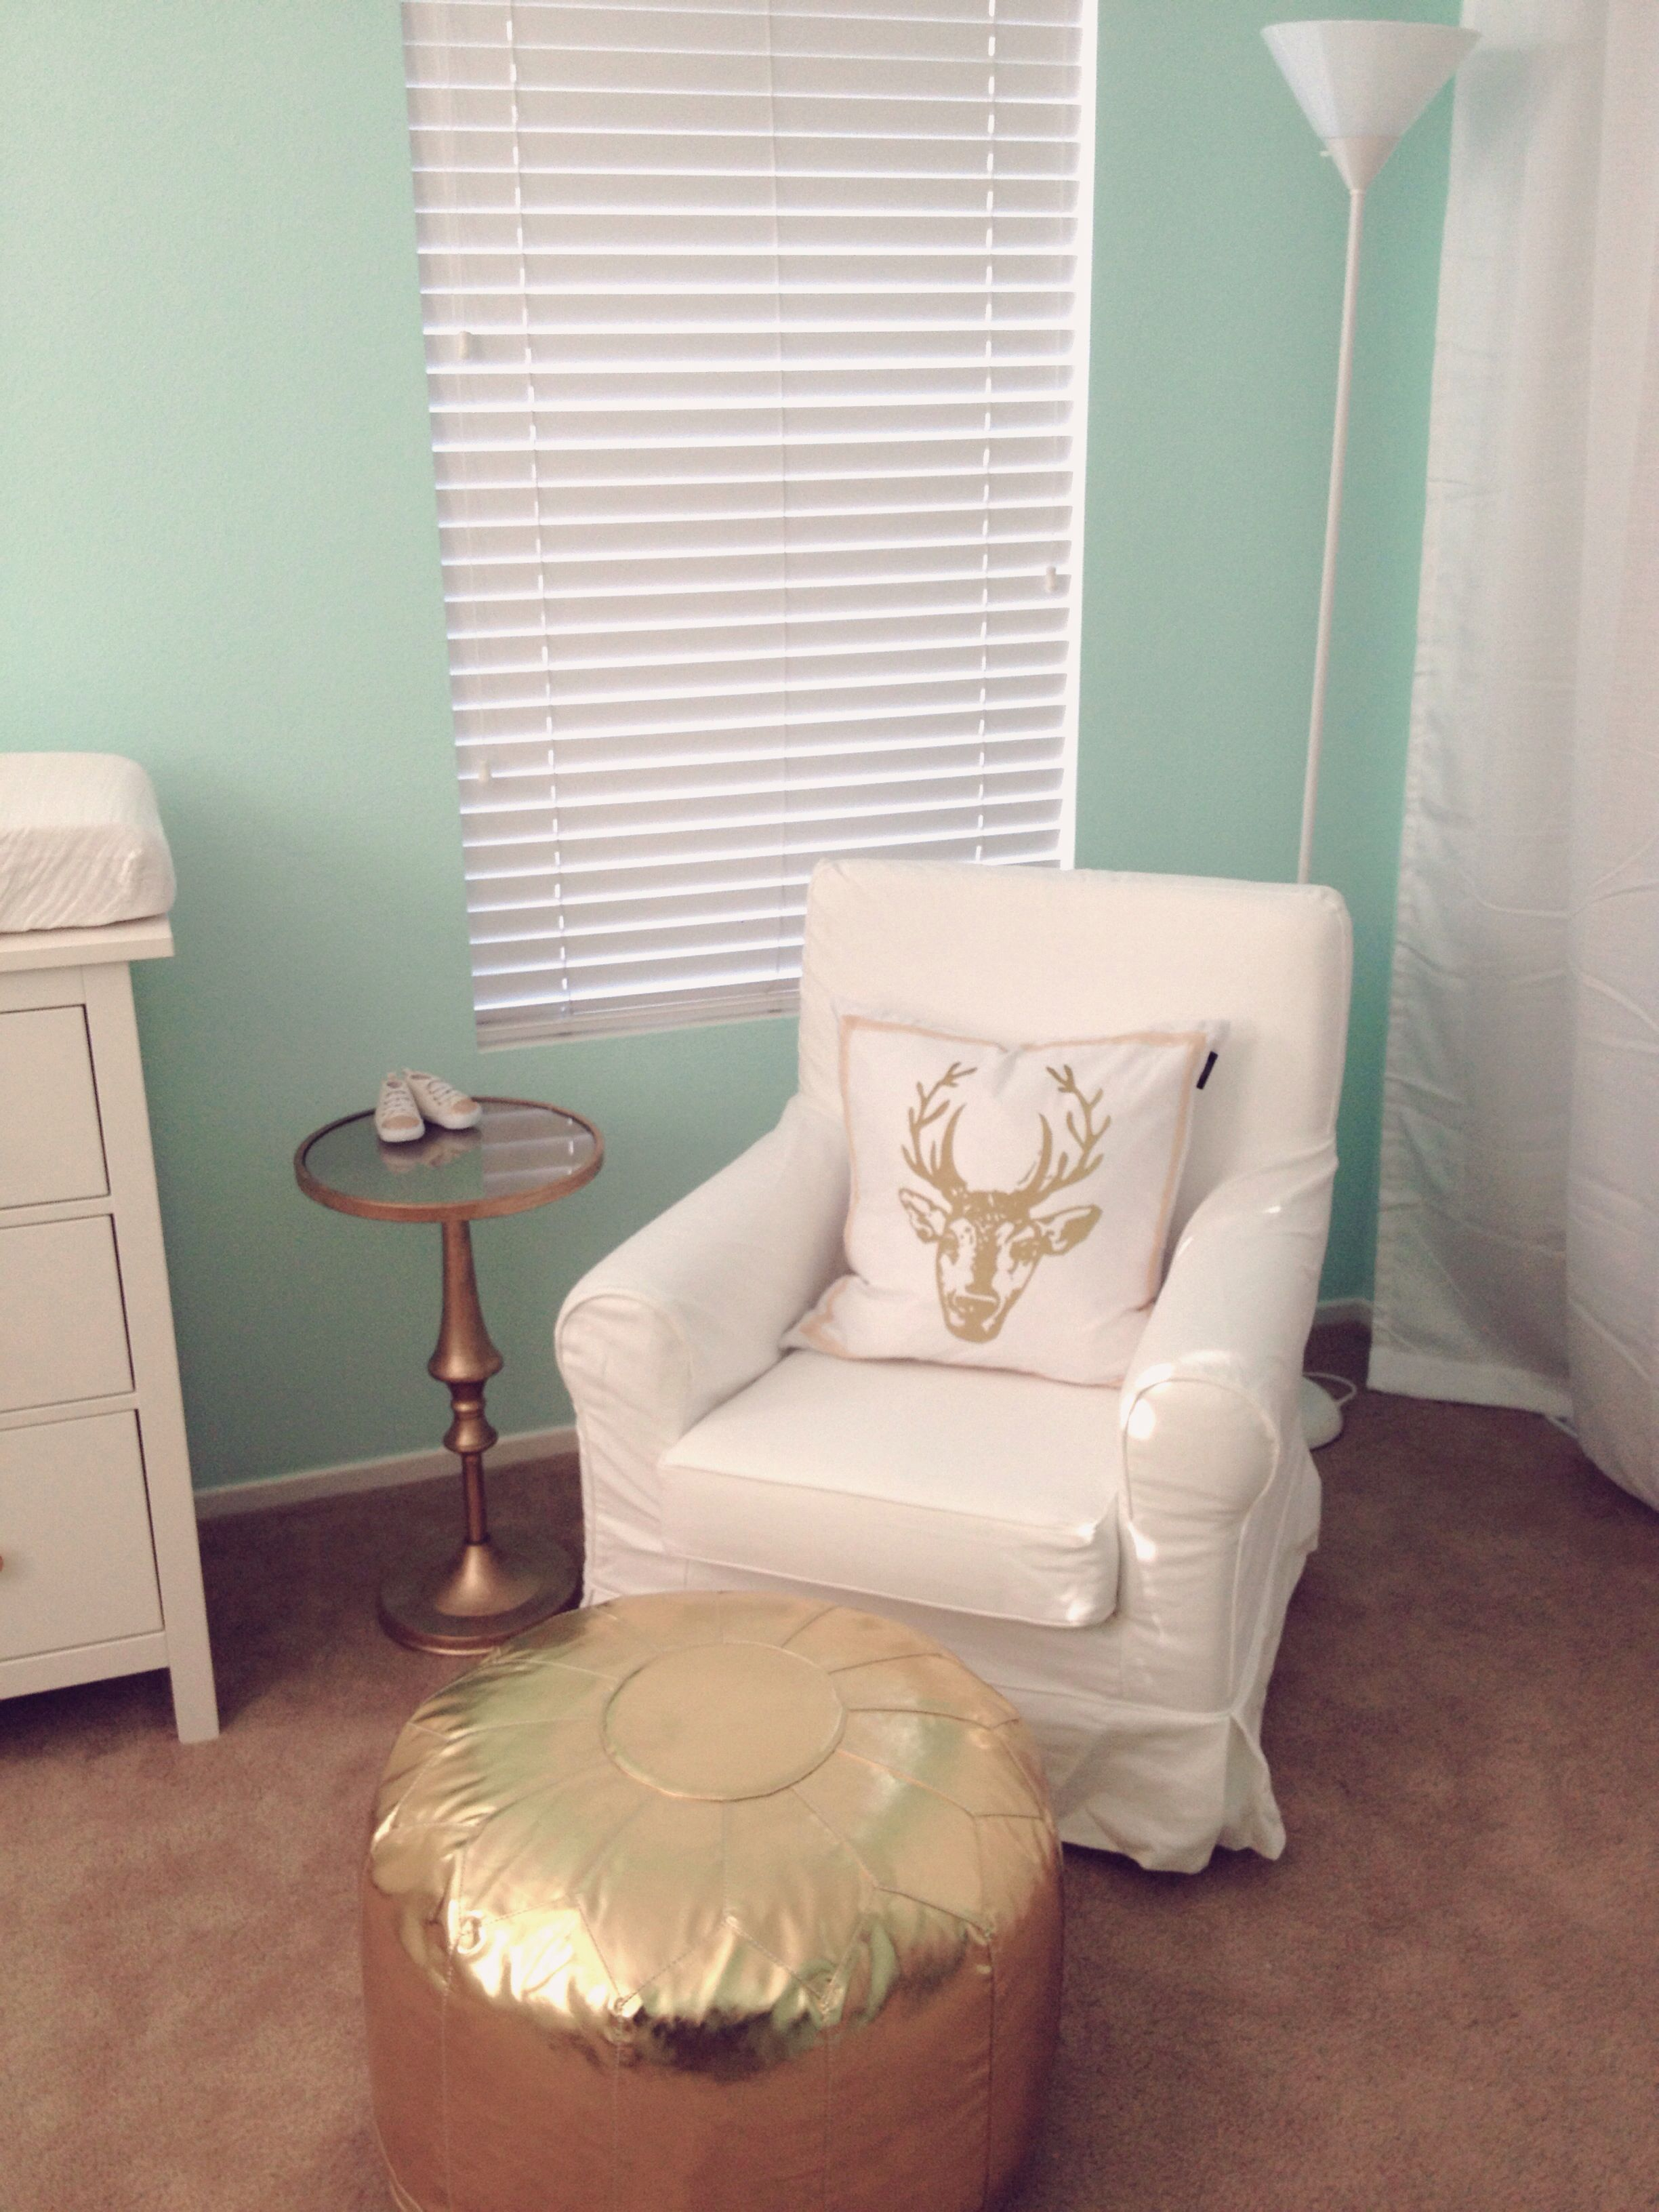 ikea jennylund sofa chair turned into rocker glider gold pouf nursery accent table from land nod pier imports round pedestal entry dining room linens modern chairs drop leaf